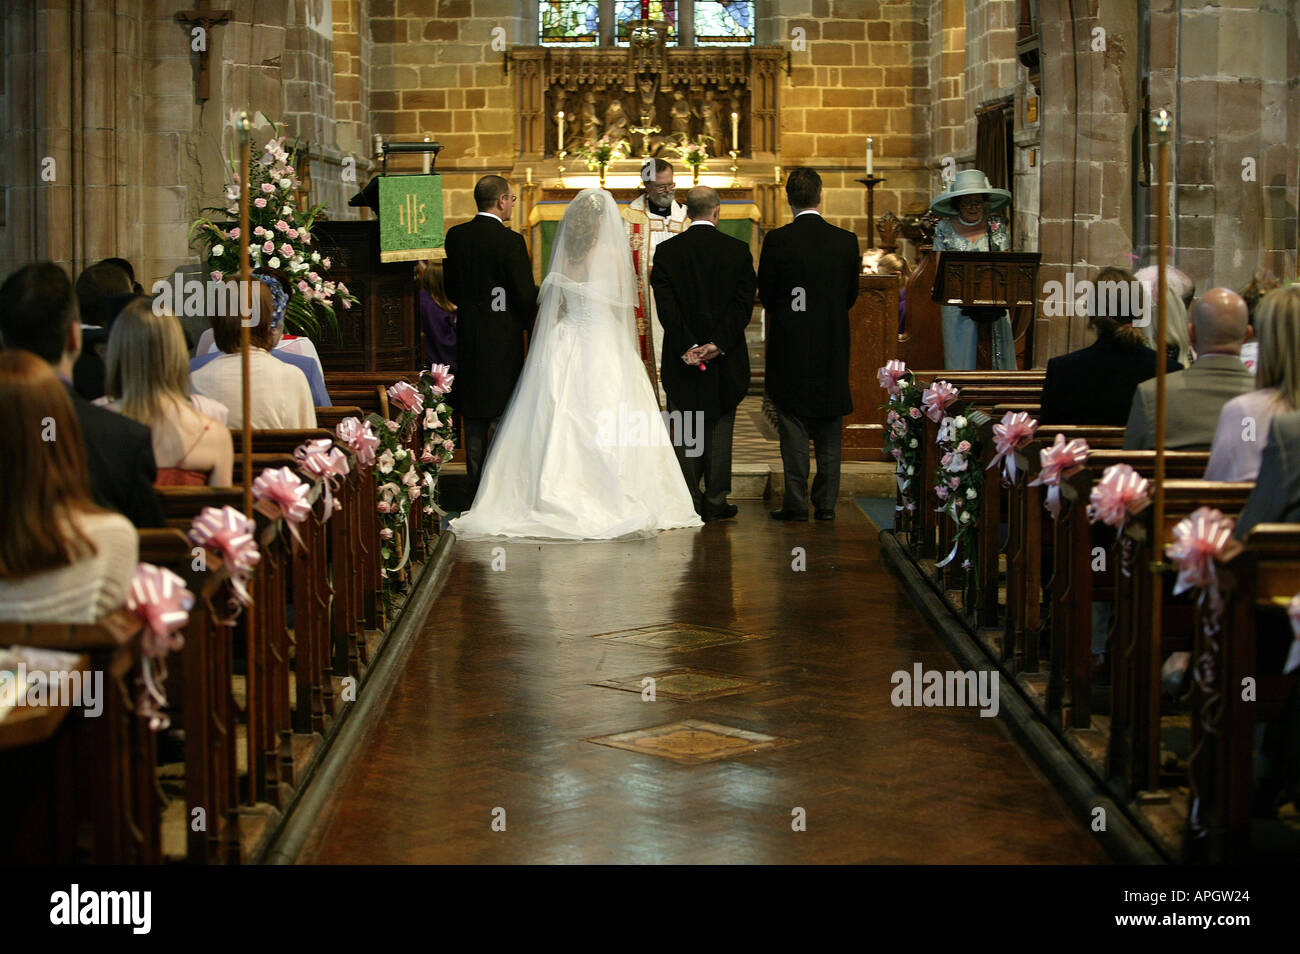 Christian Wedding High Resolution Stock Photography And Images Alamy